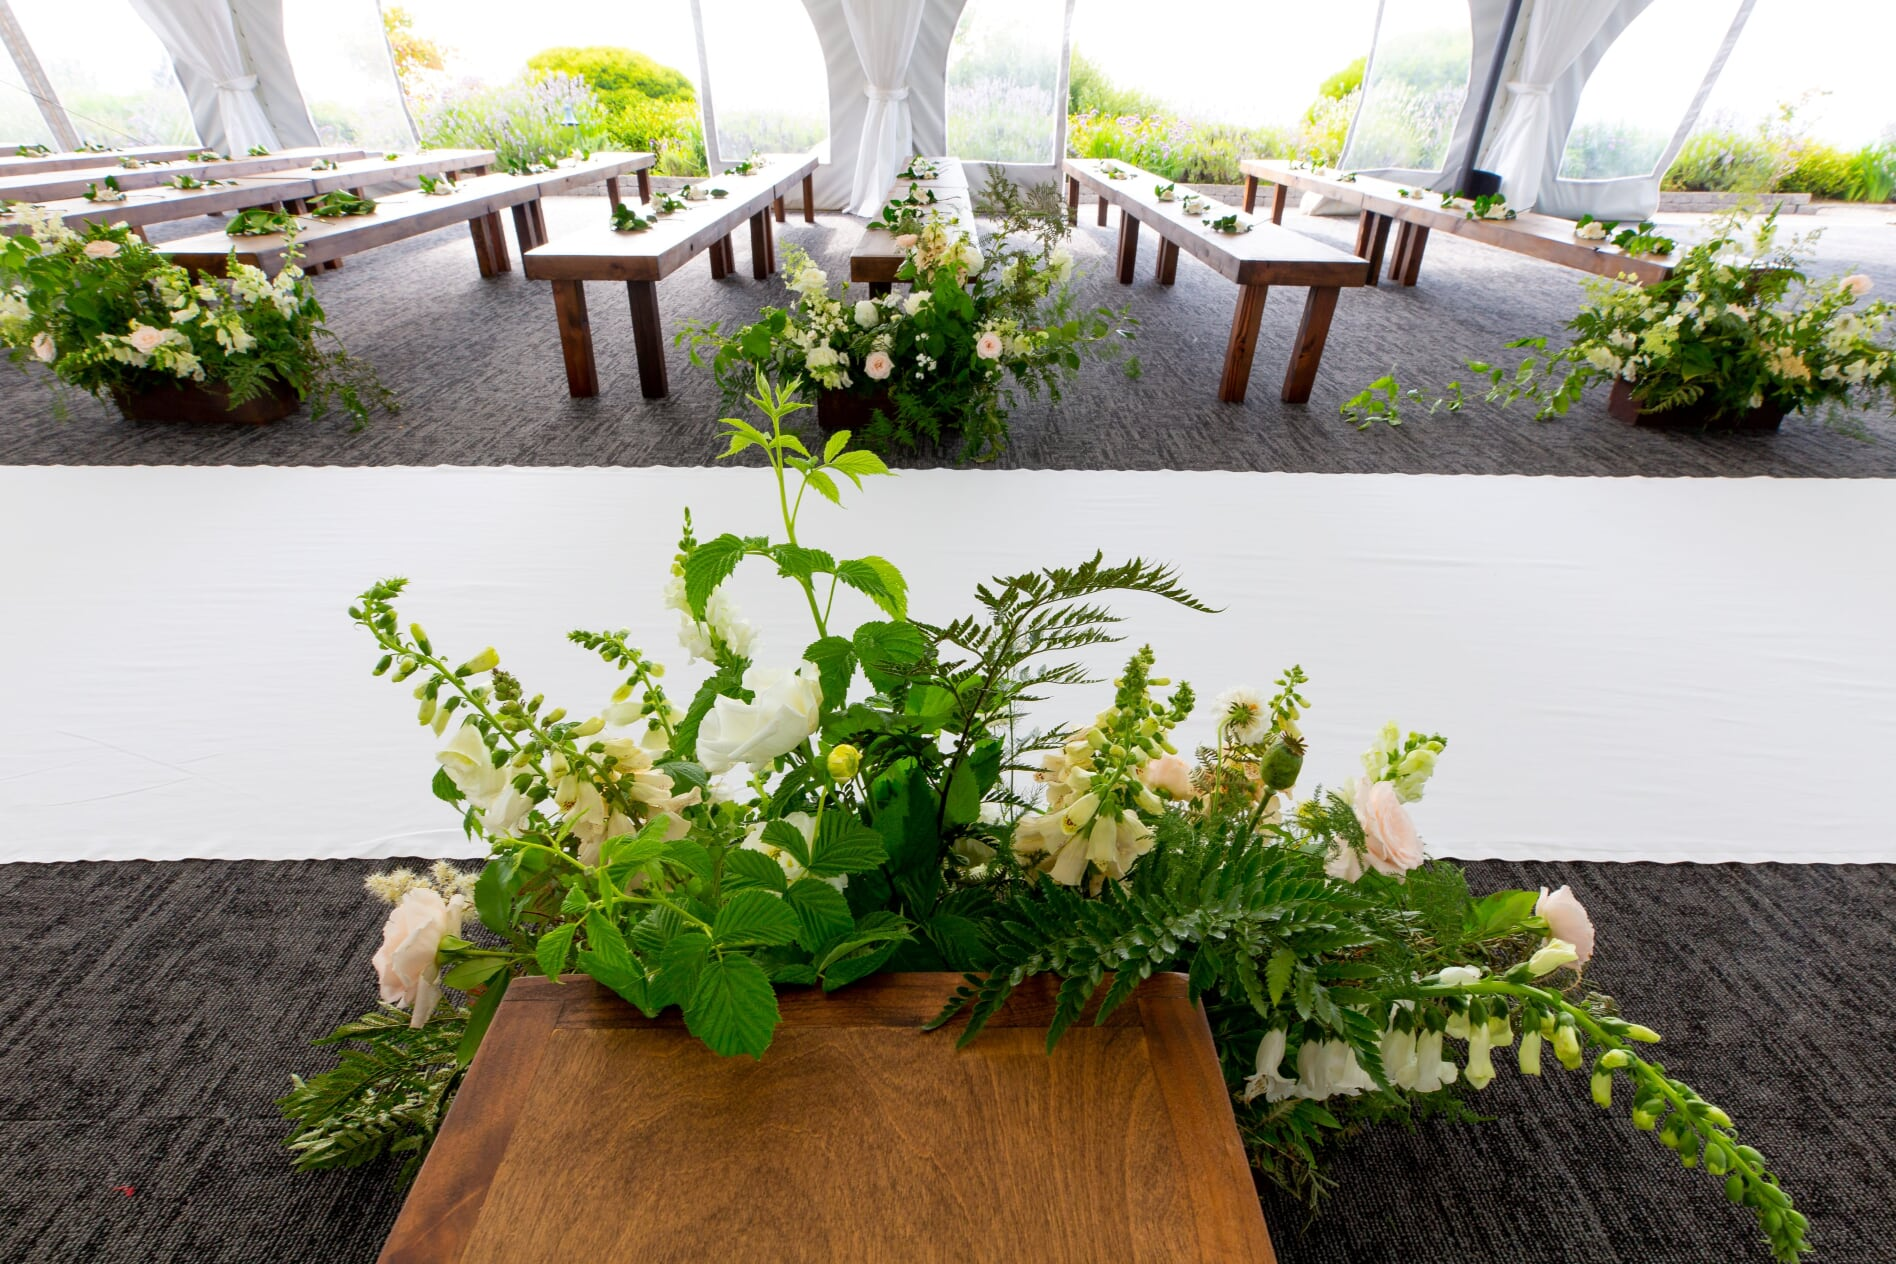 aisle flowers placed by wooden benches for ceremony